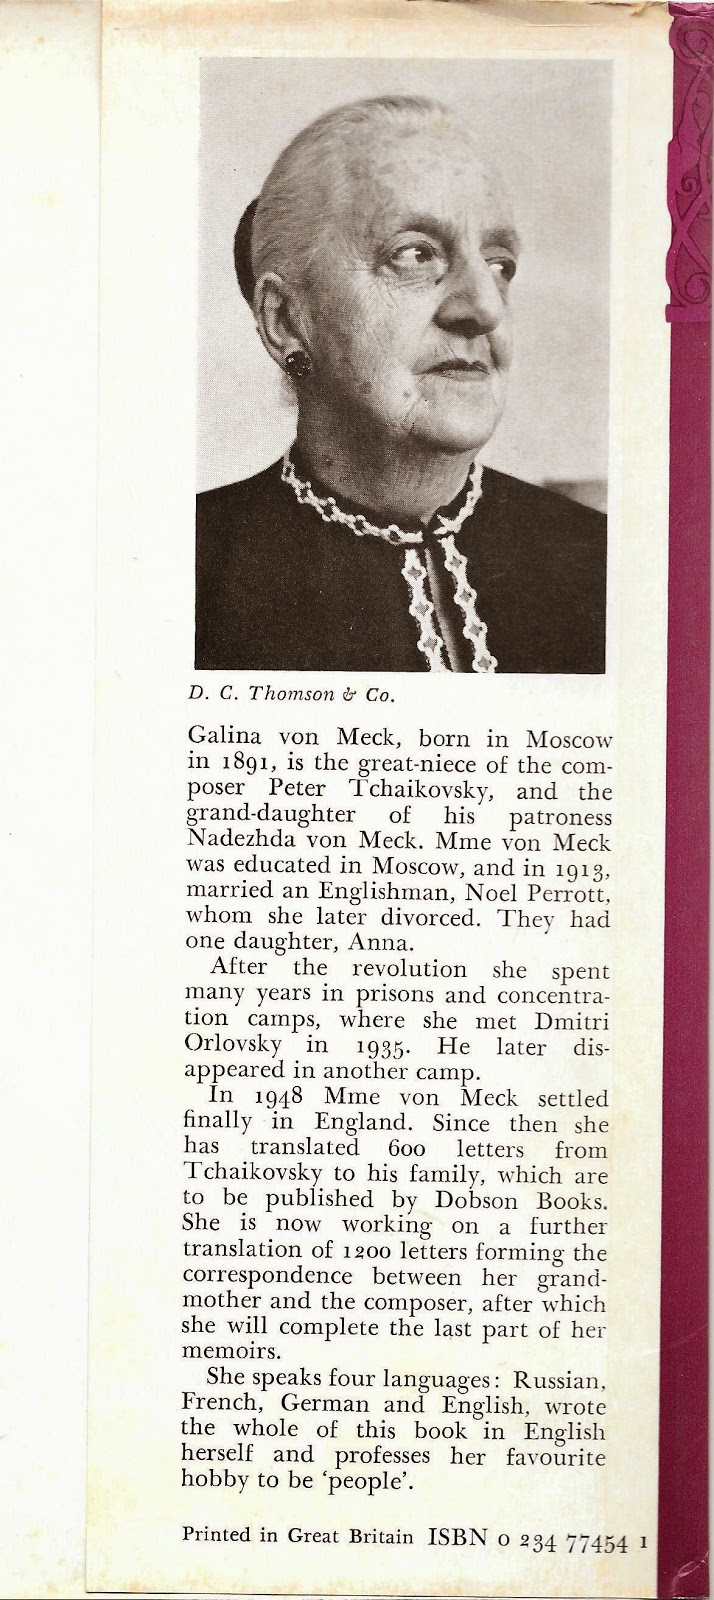 Letter (dated March 15, 1978) from Galina von Meck (1891-1985),  daughter of Nicholas von Meck & Anna Davydova;  great-niece of Tchaikovsky; grand-daughter of his patroness Nedezhda von Meck